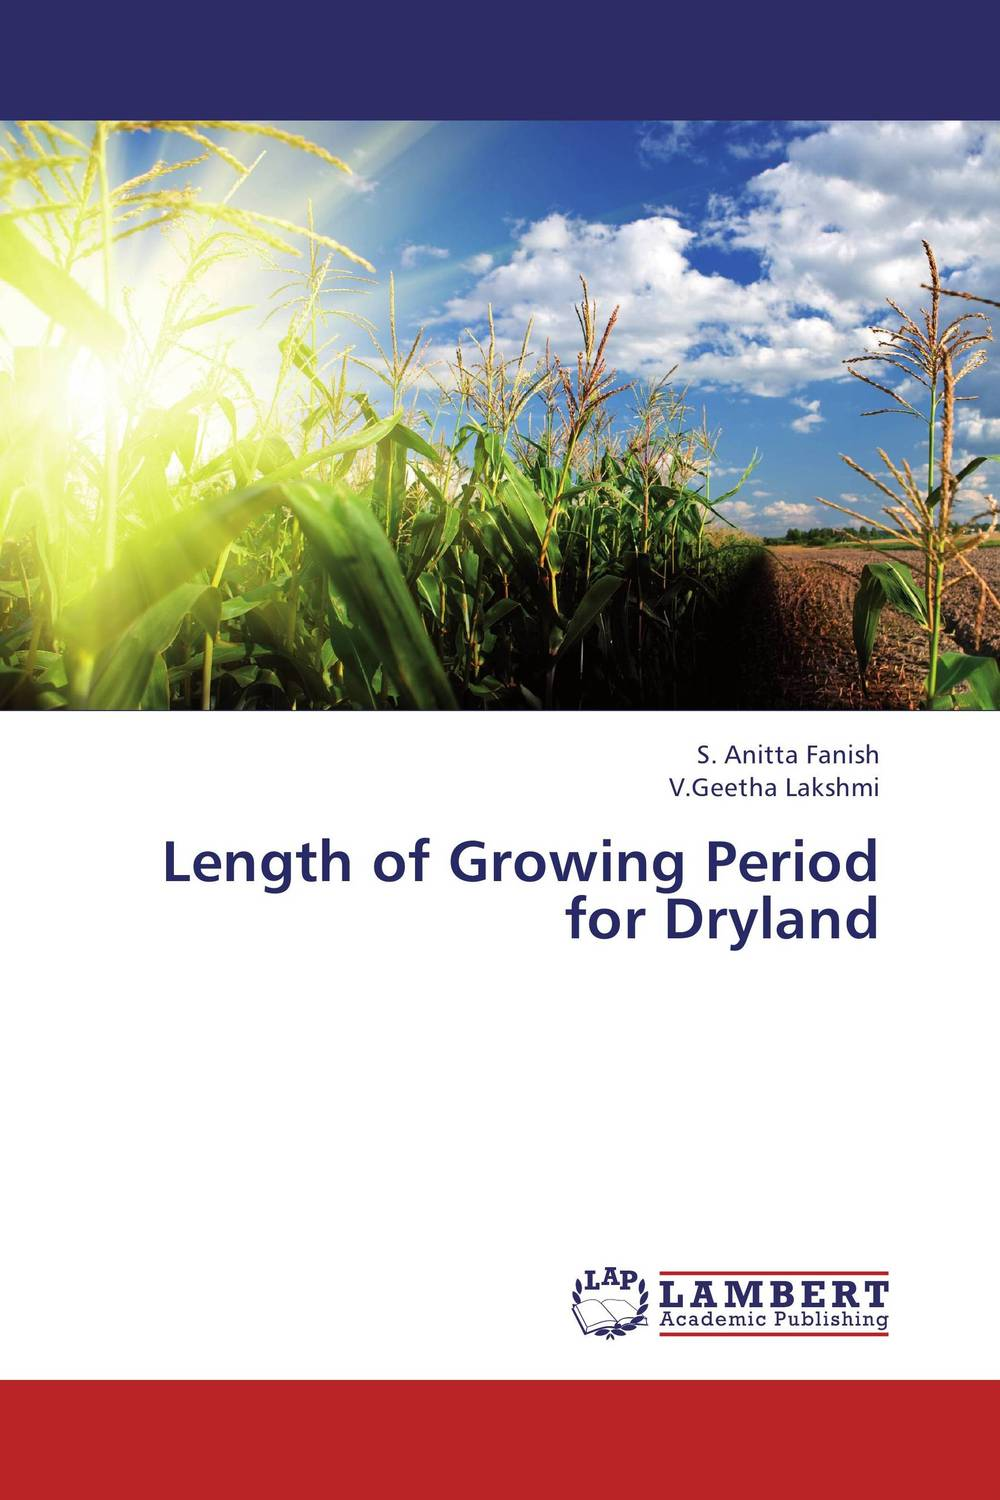 Length of Growing Period for Dryland pastoralism and agriculture pennar basin india